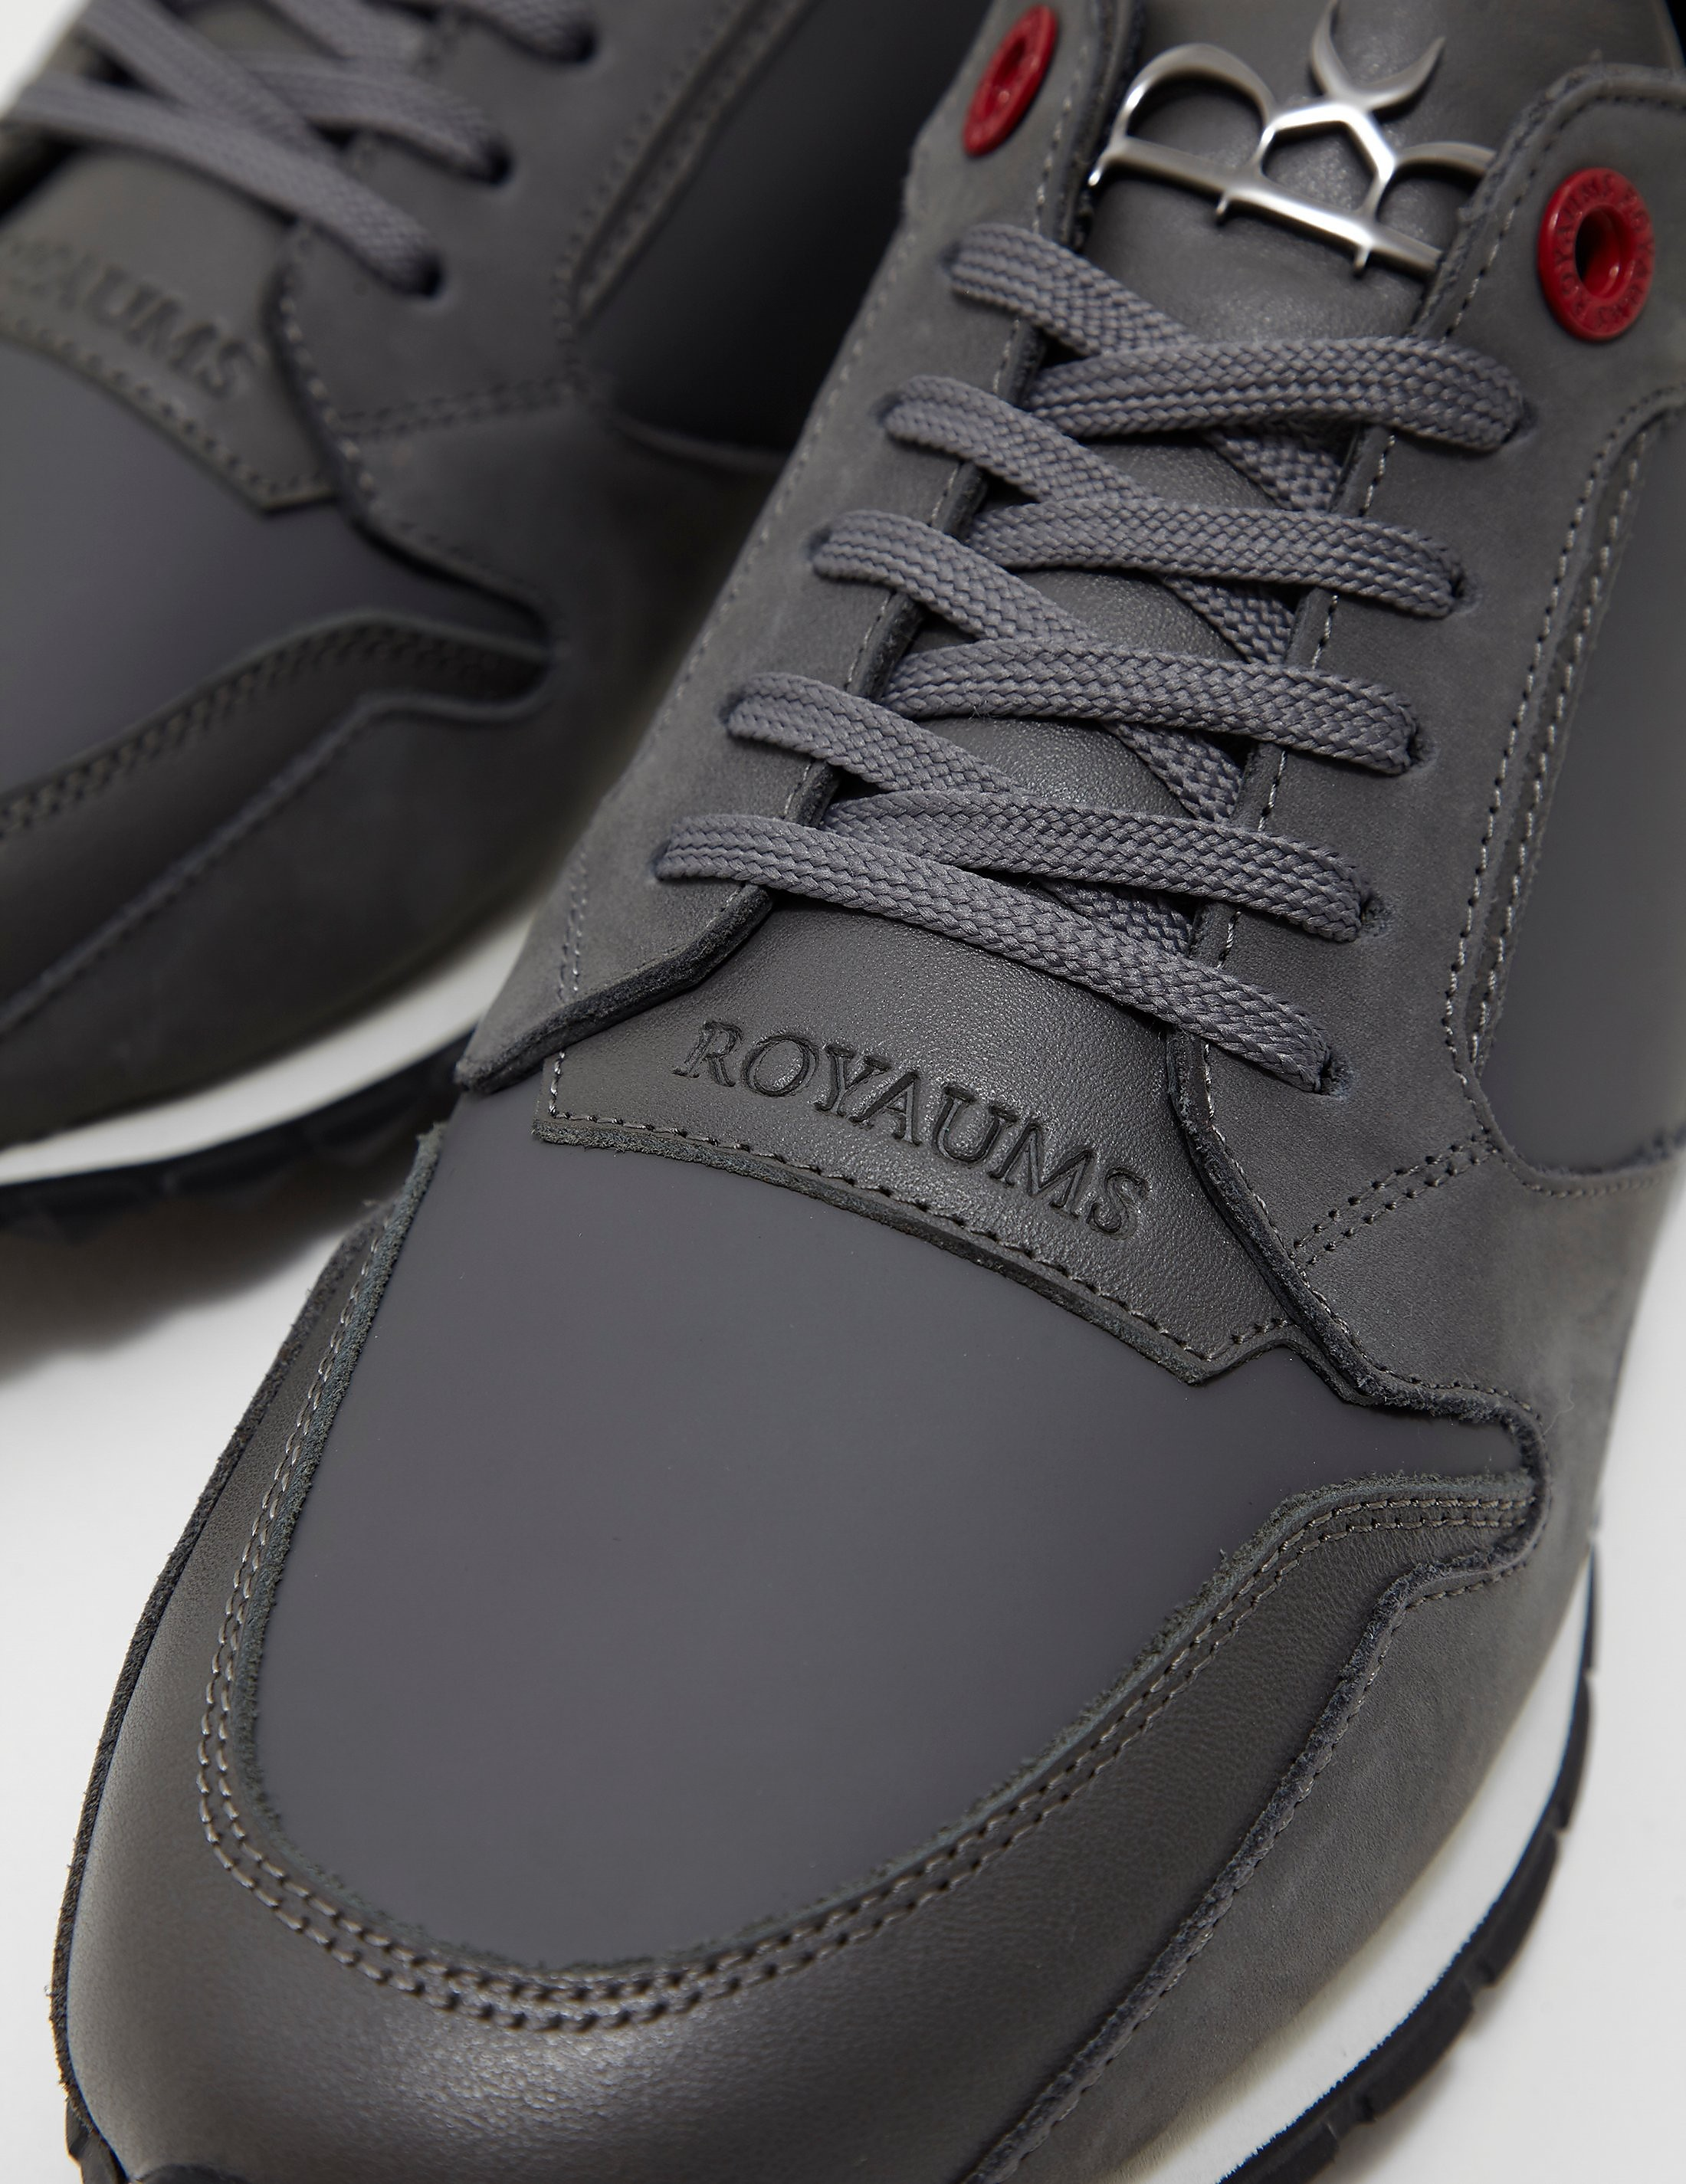 Royaums Endurance